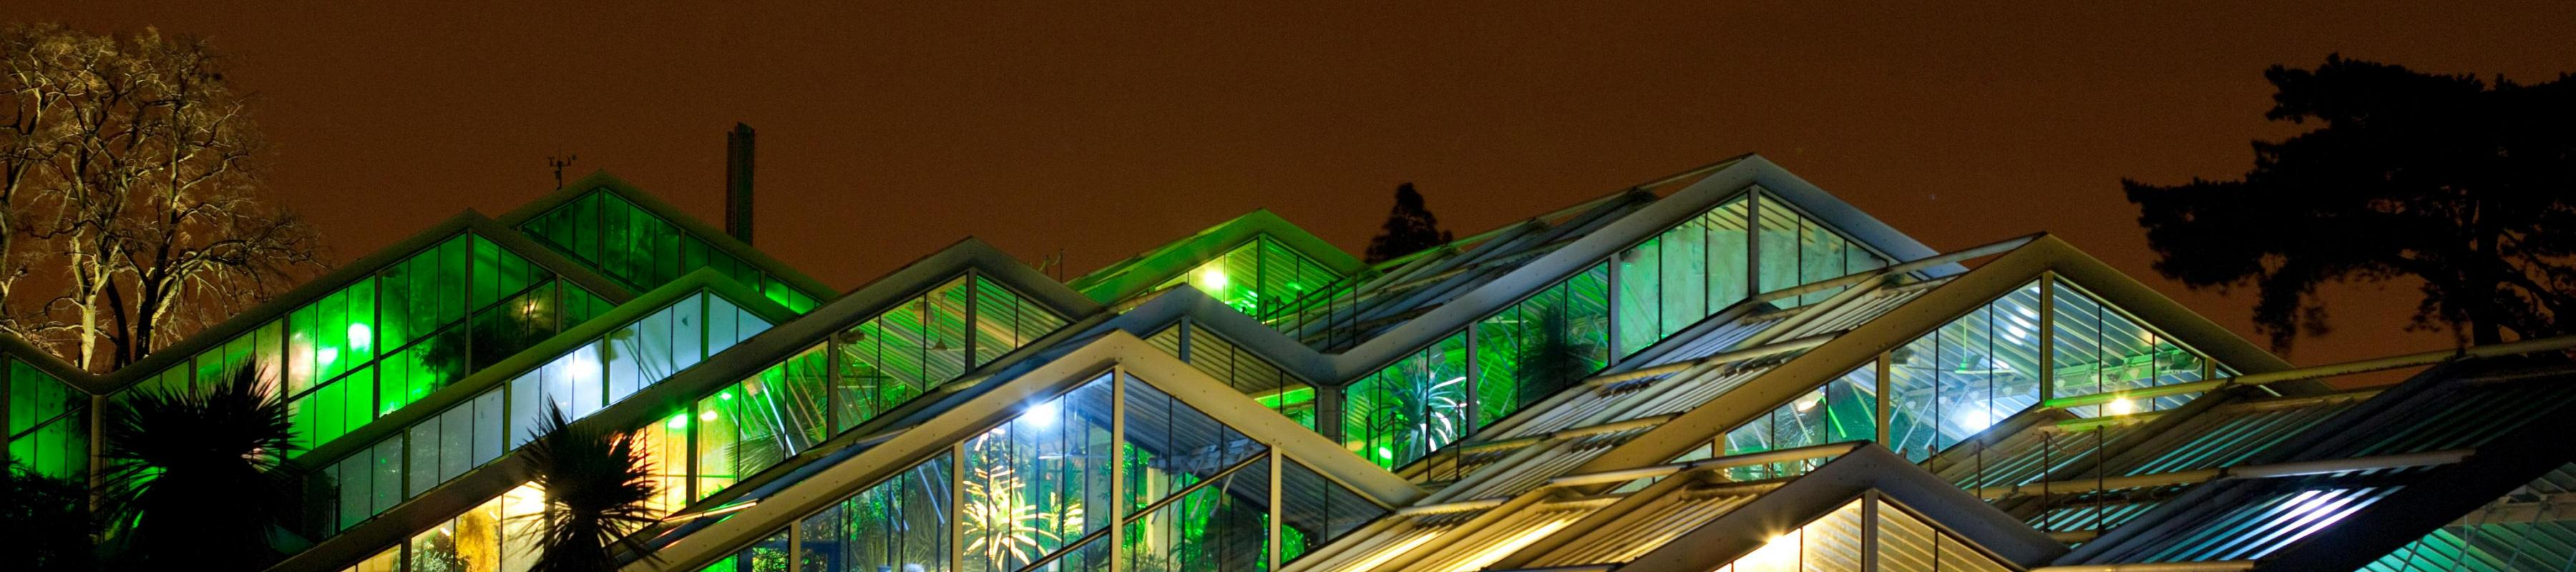 Princess of Wales Conservatory illuminated at night